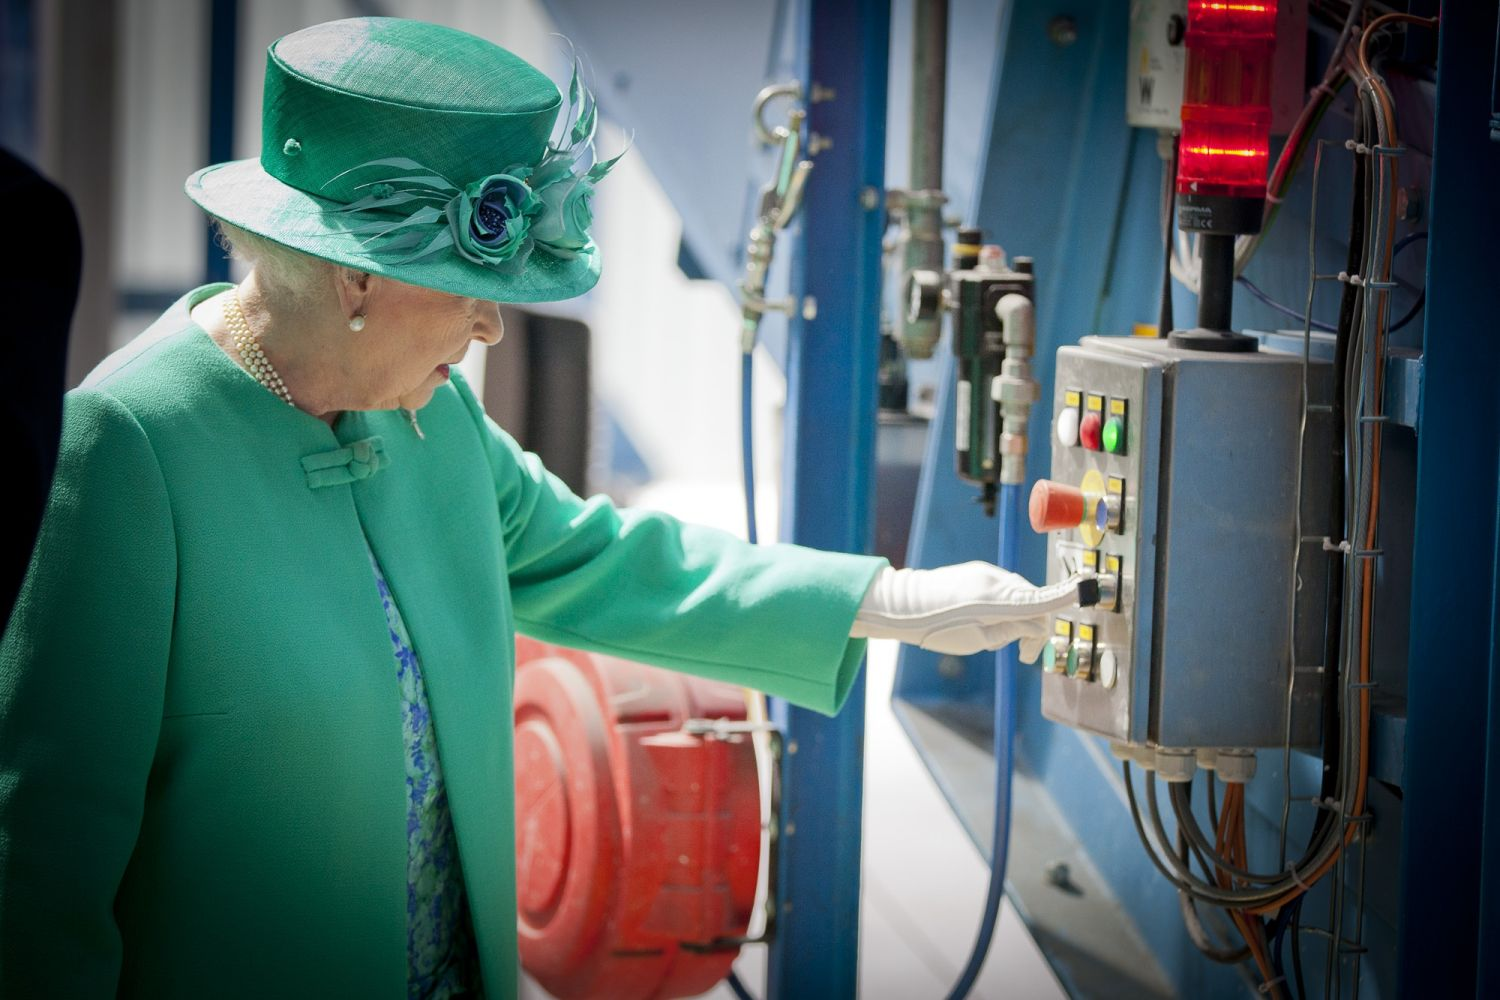 The Queen starts the RCF Conveyor